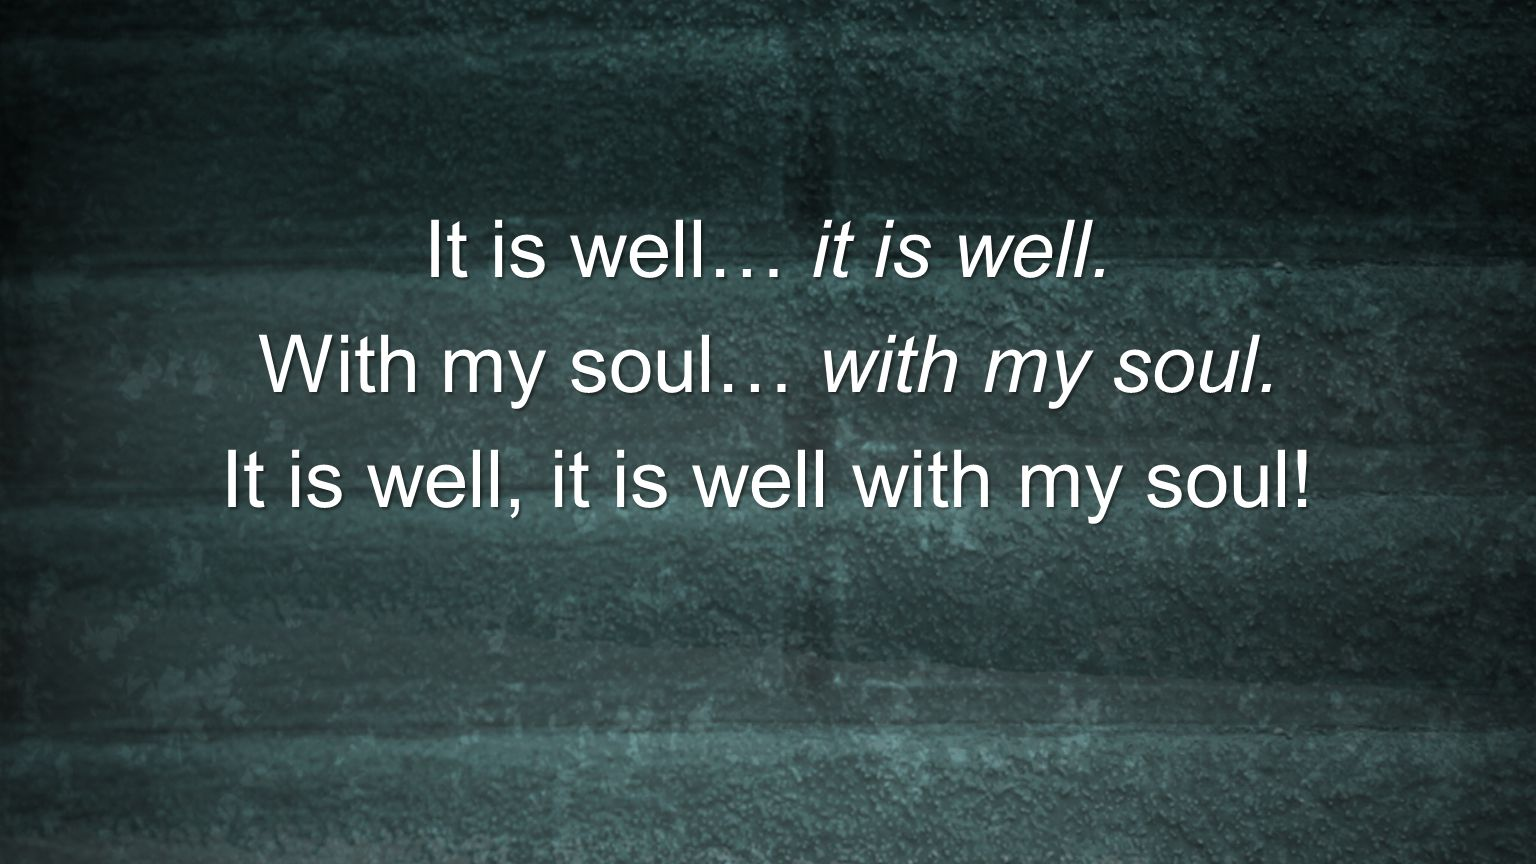 With my soul… with my soul. It is well, it is well with my soul!